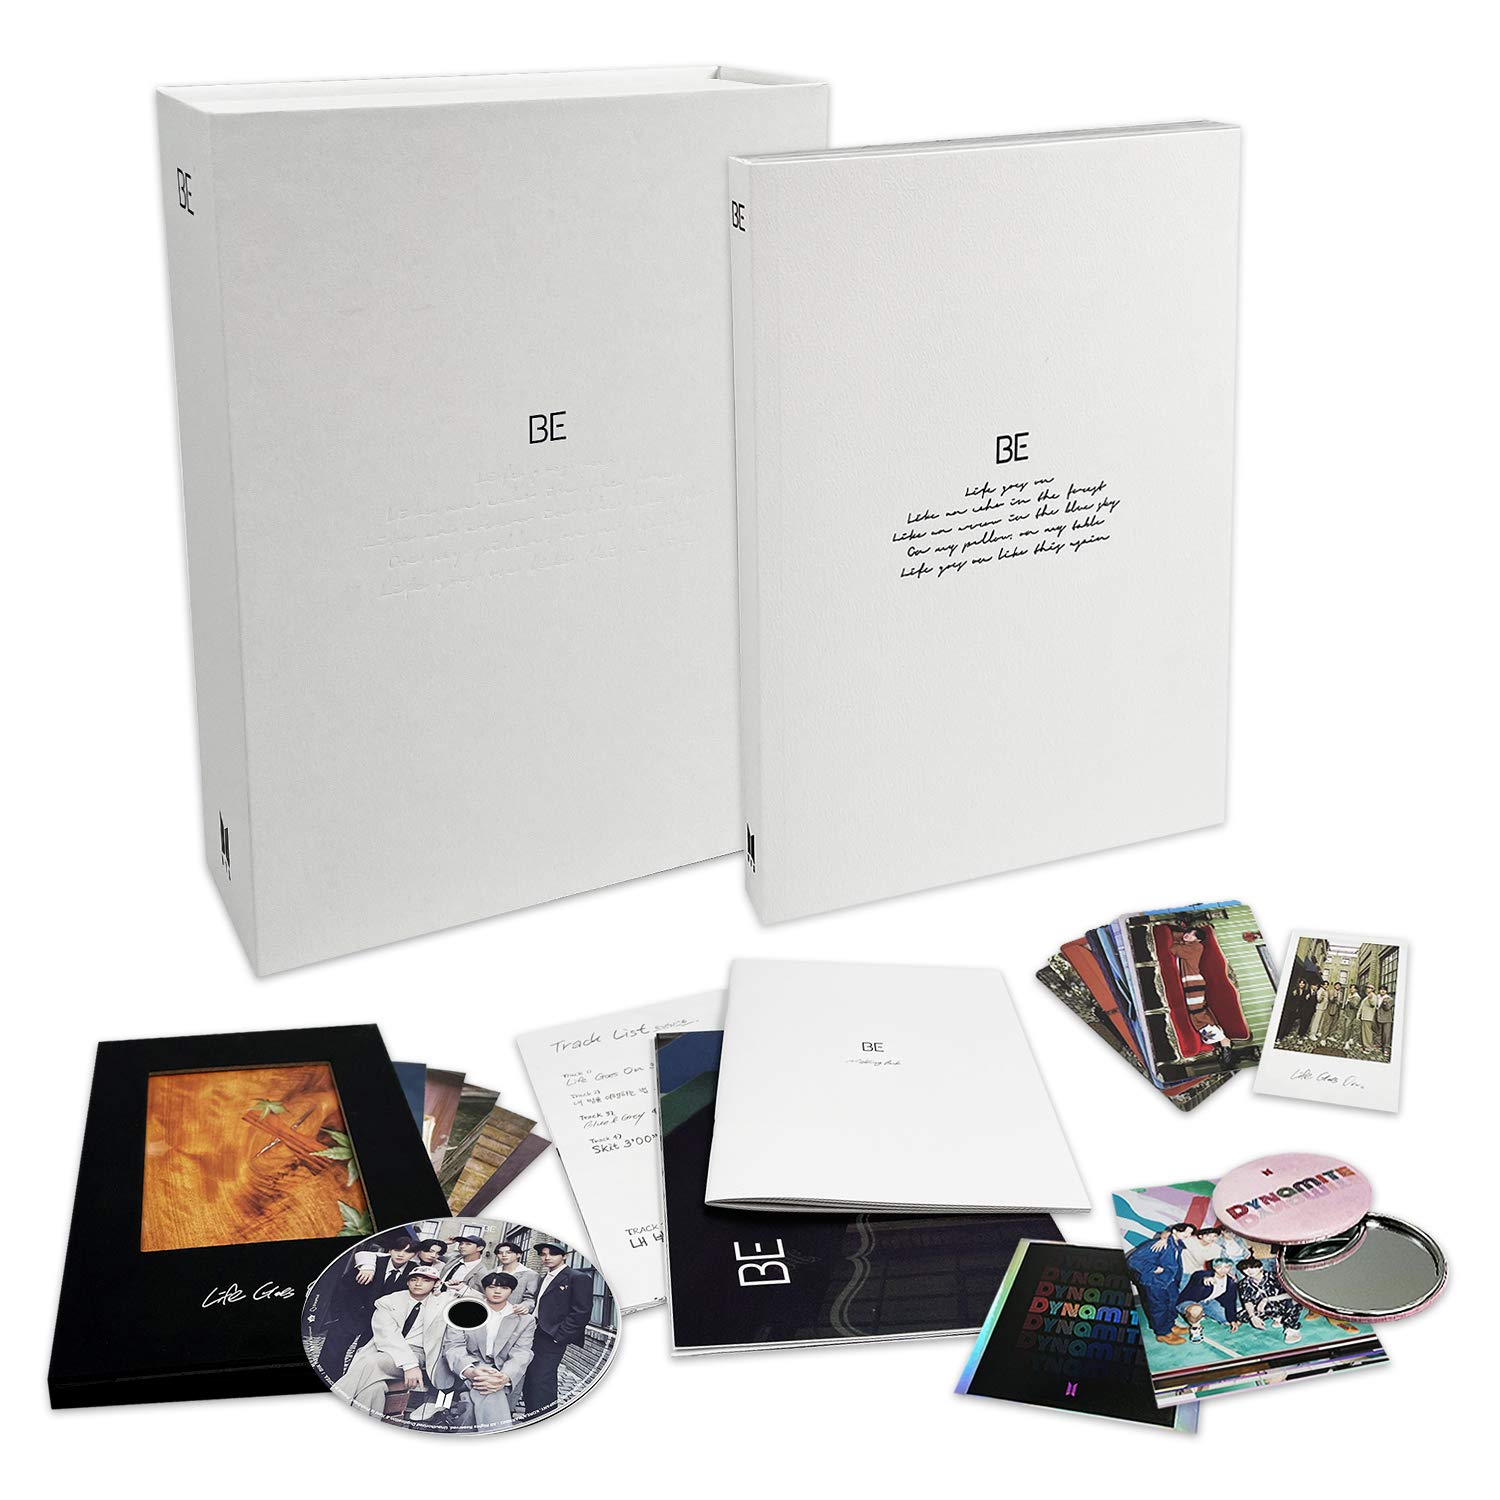 BTS DELUXE EDITION ALBUM - [ BE / Limited ver. ] CD + Photo Book + Making Book + Lyric Poster + Photo Cards + Polaroid + Photo Frame + Postcards + Poster(On pack) + FREE GIFT